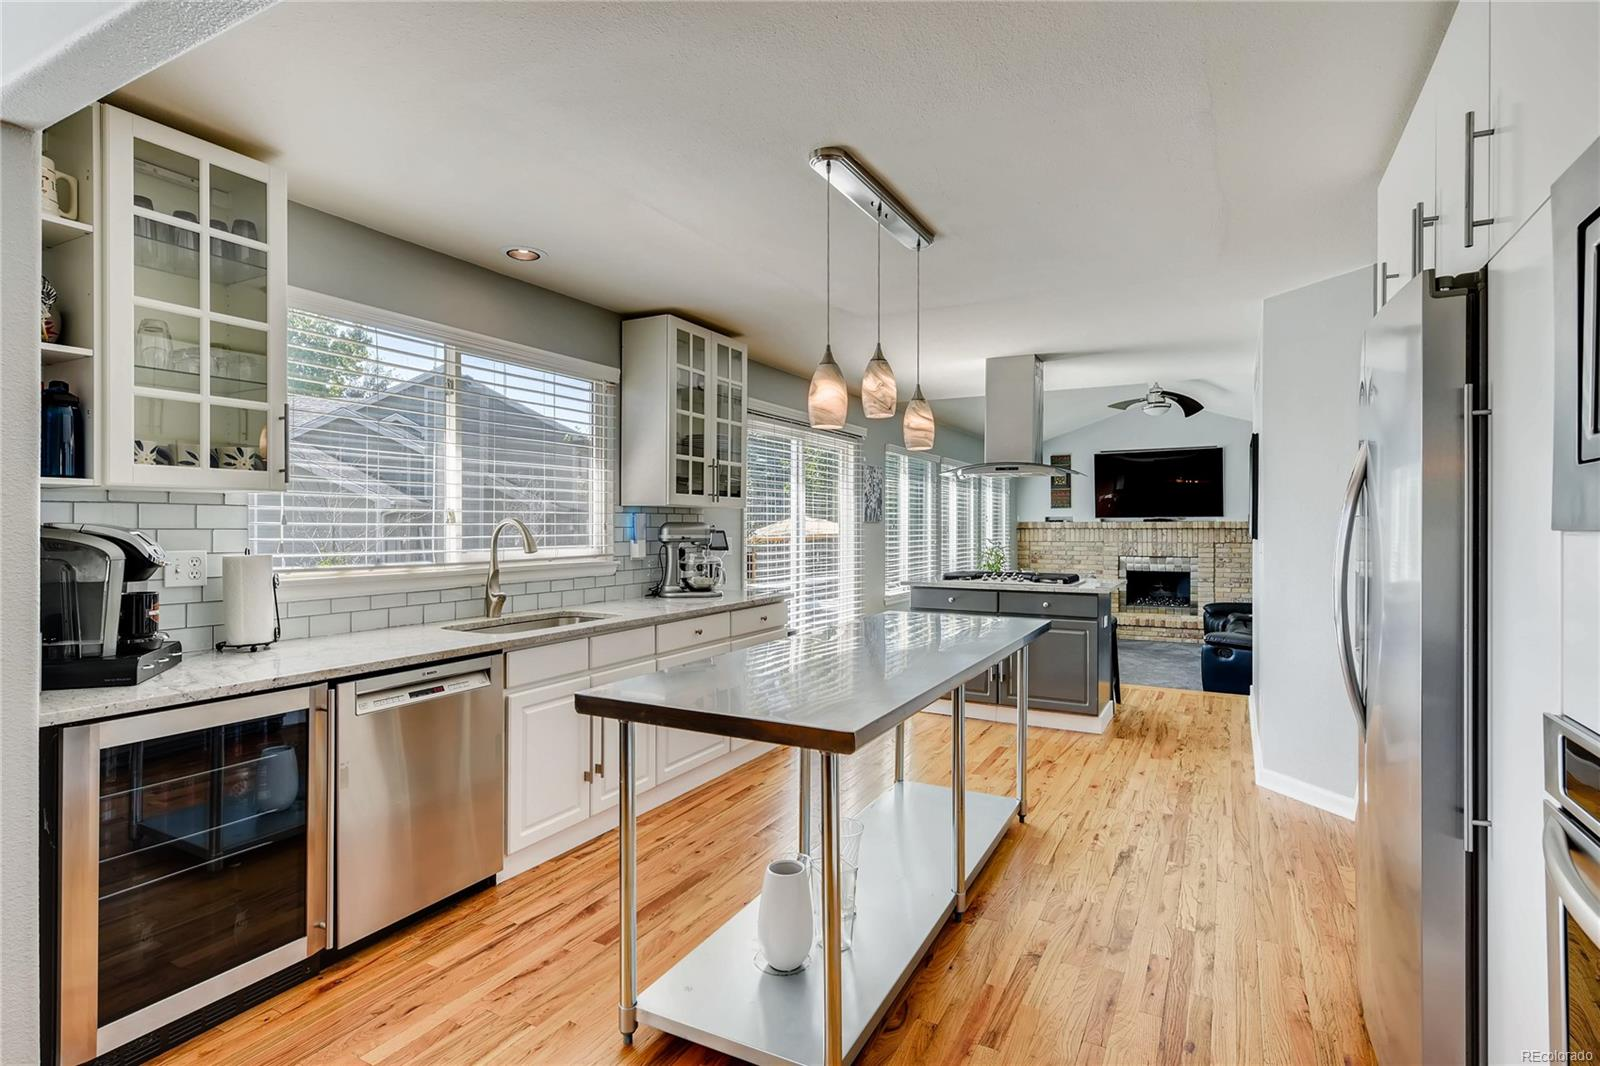 The tile back splash along with the white and grey colors provide a clean setting. The white baseboards are a nice touch throughout the home.